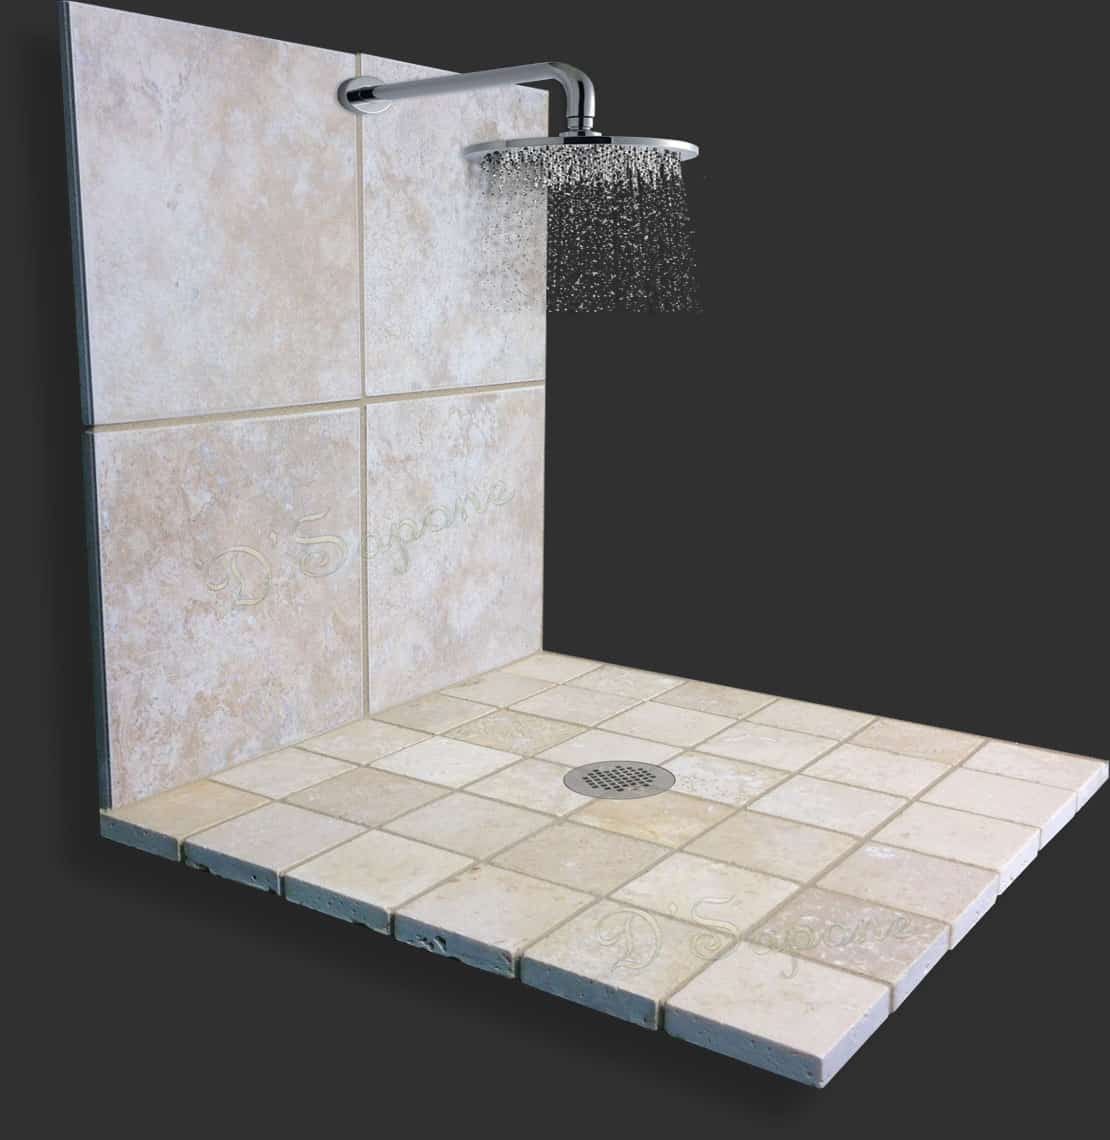 Marble Shower Cleaner Mold